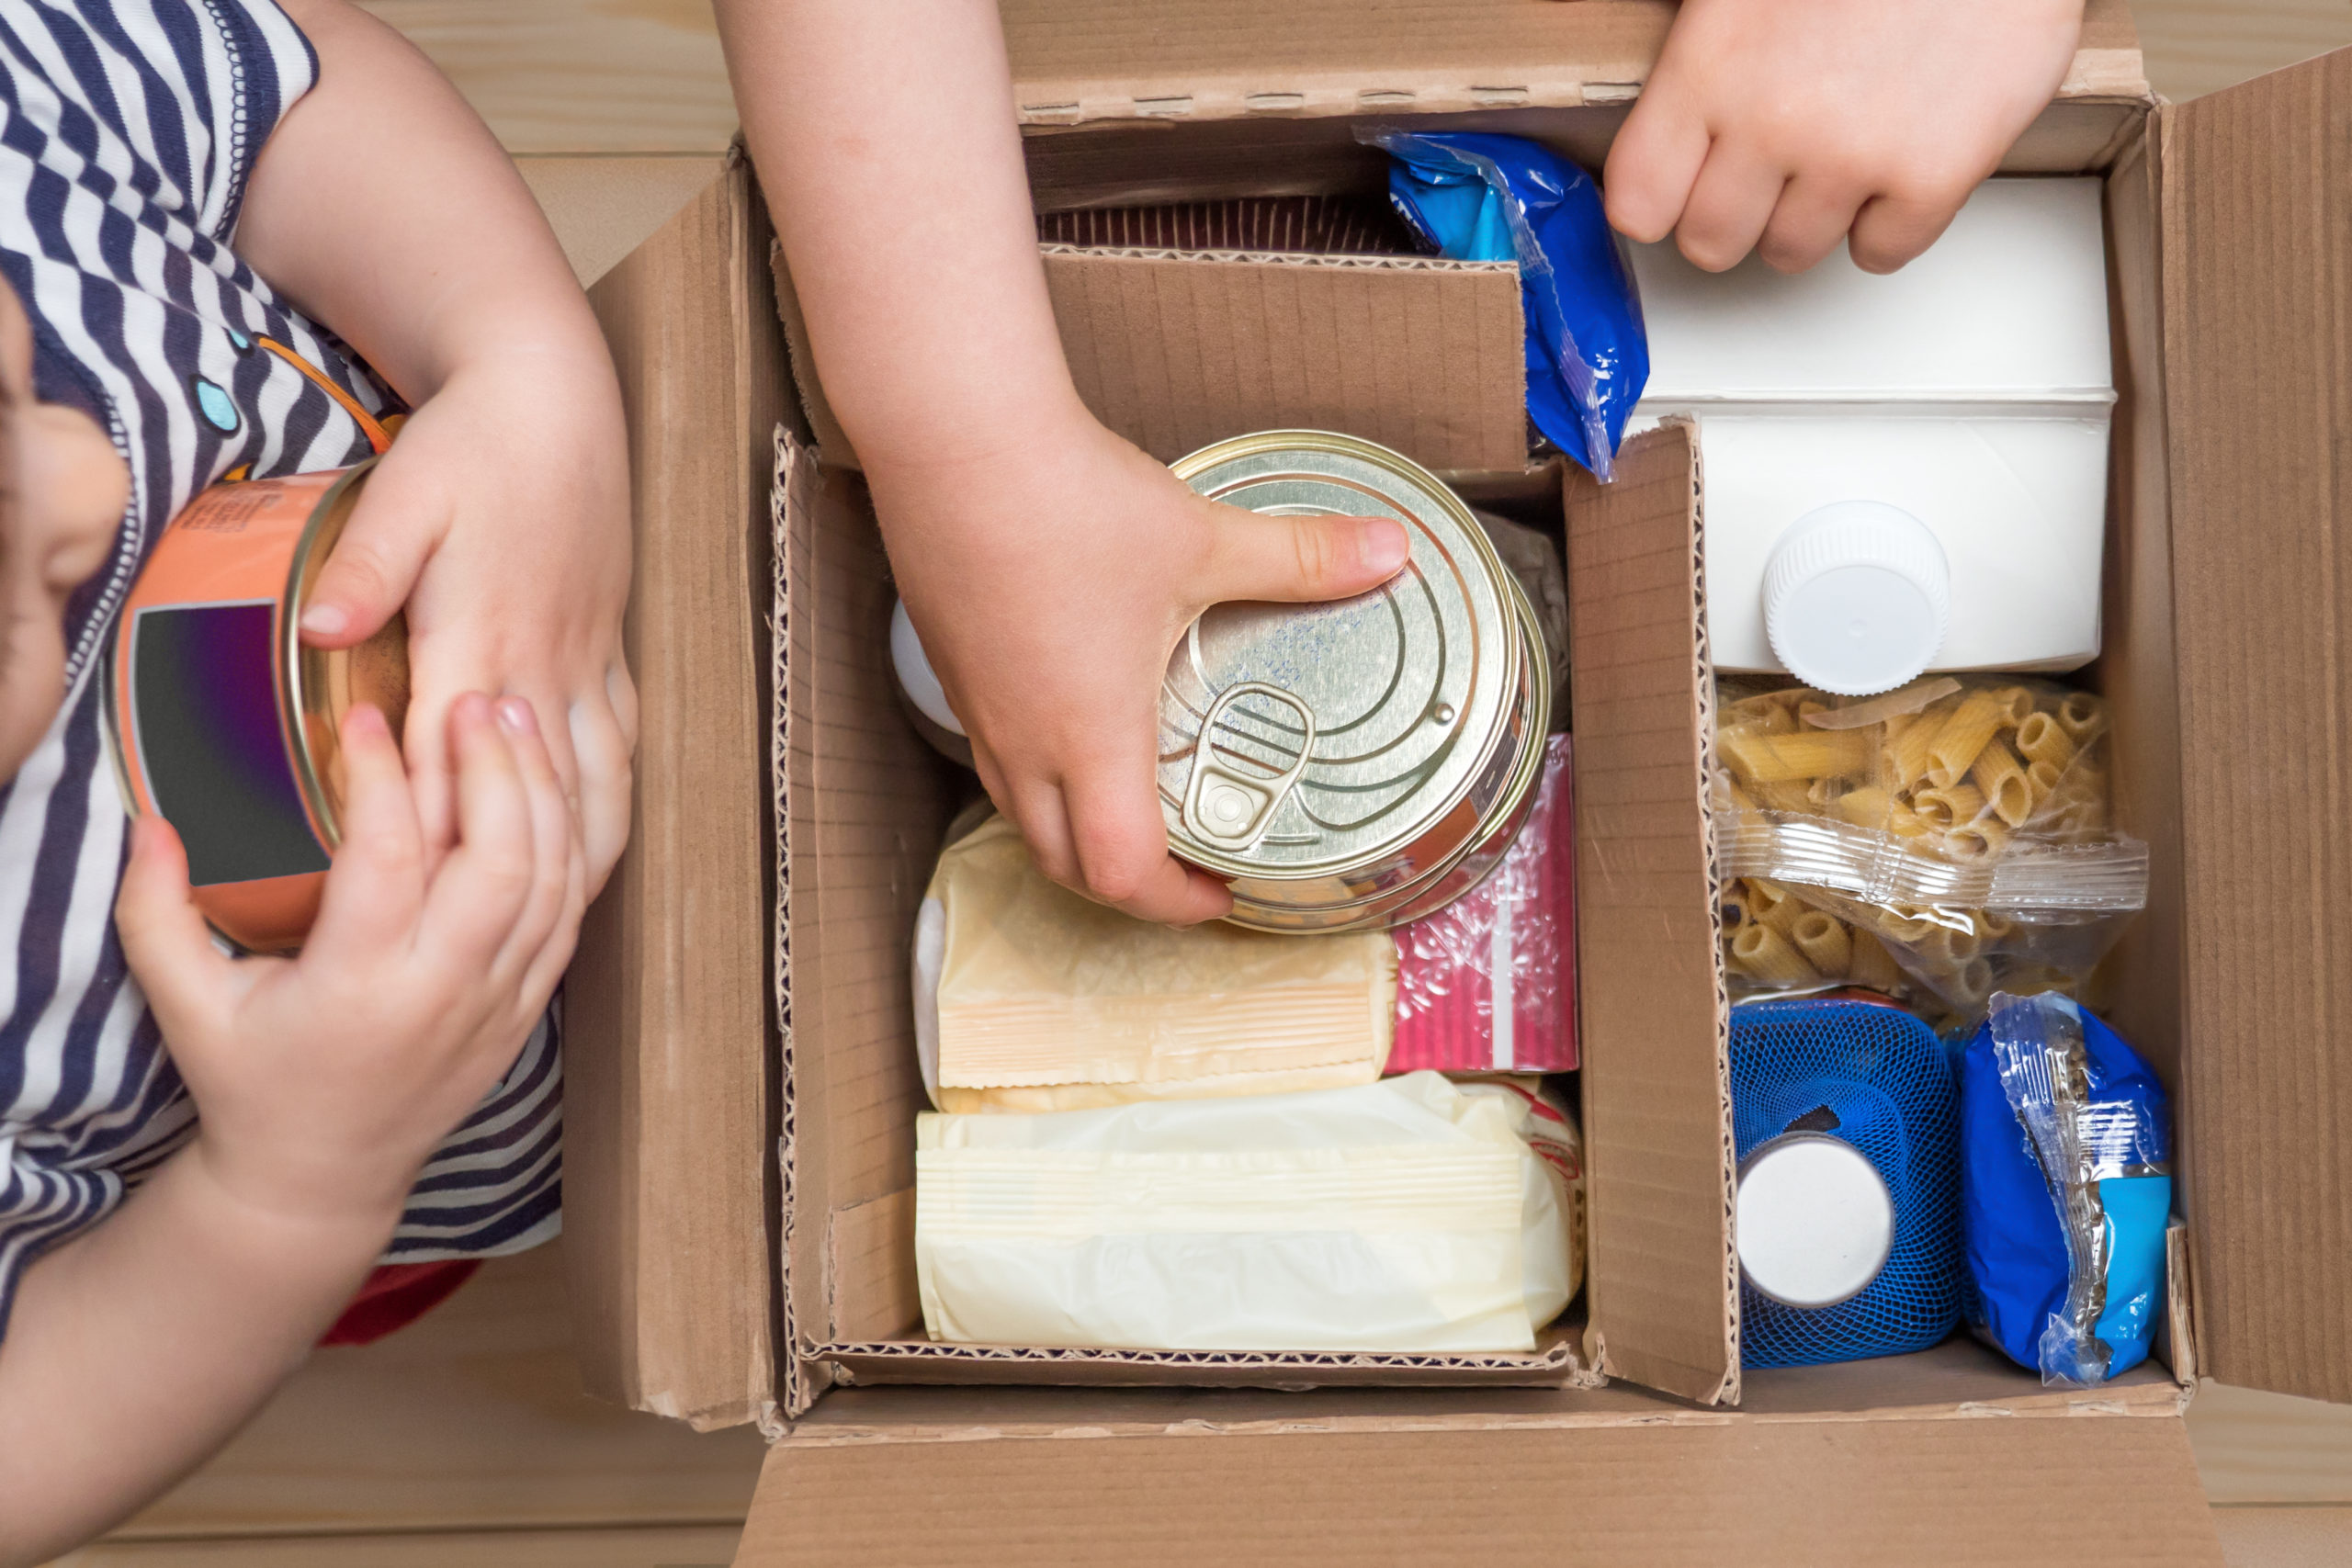 Investment manager coalition urge Compass to take action over inadequate food parcels